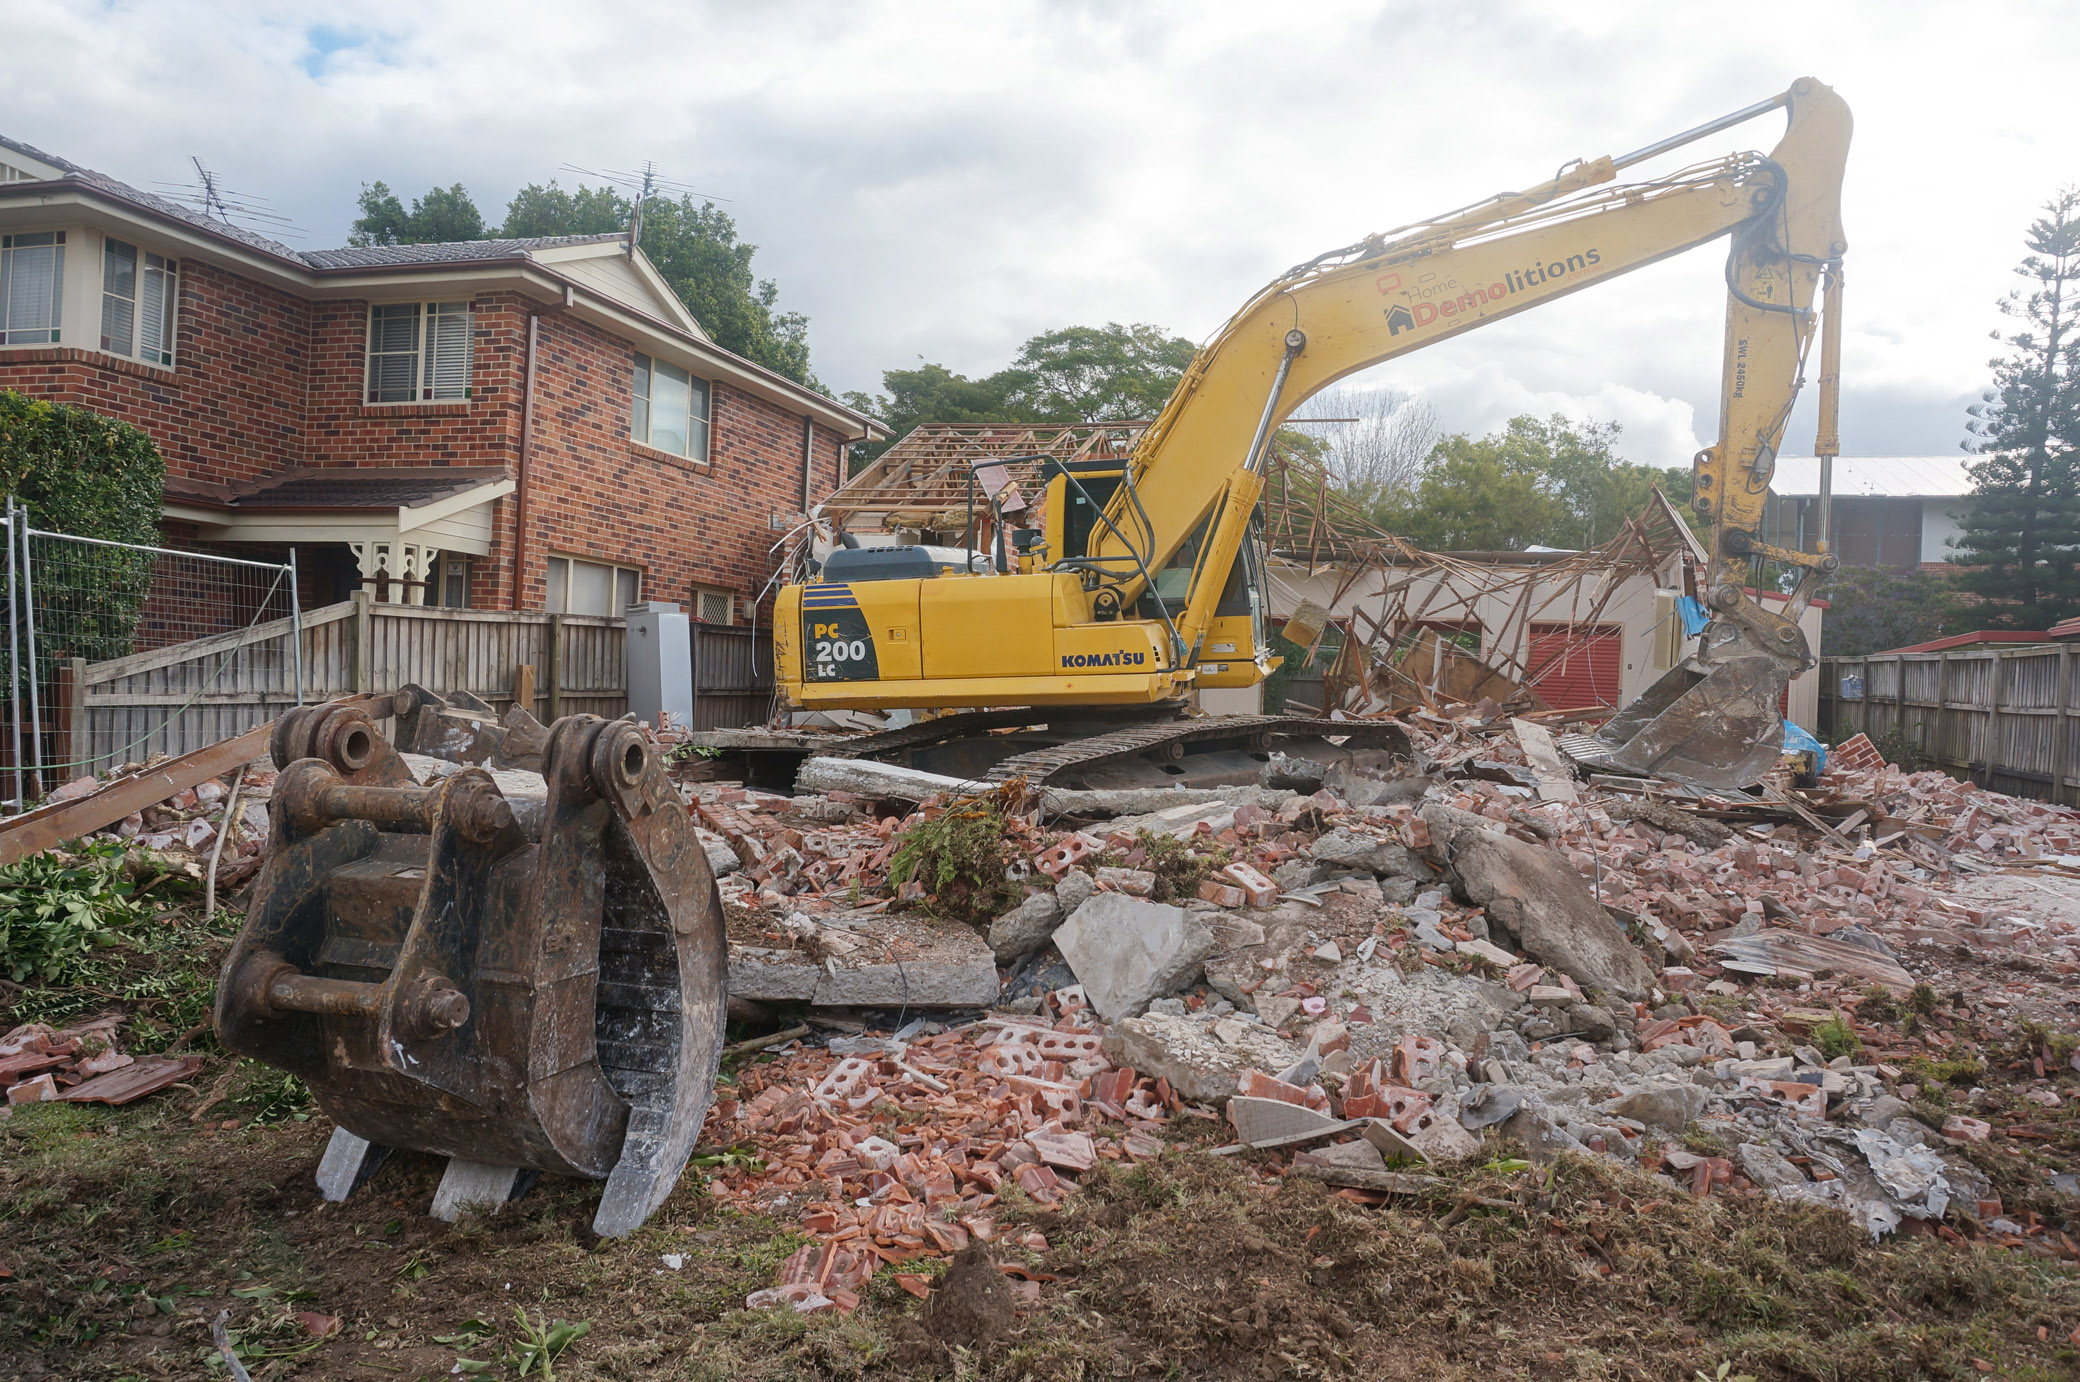 Excavator amongst rubble at demolition site in West ryde.jpg